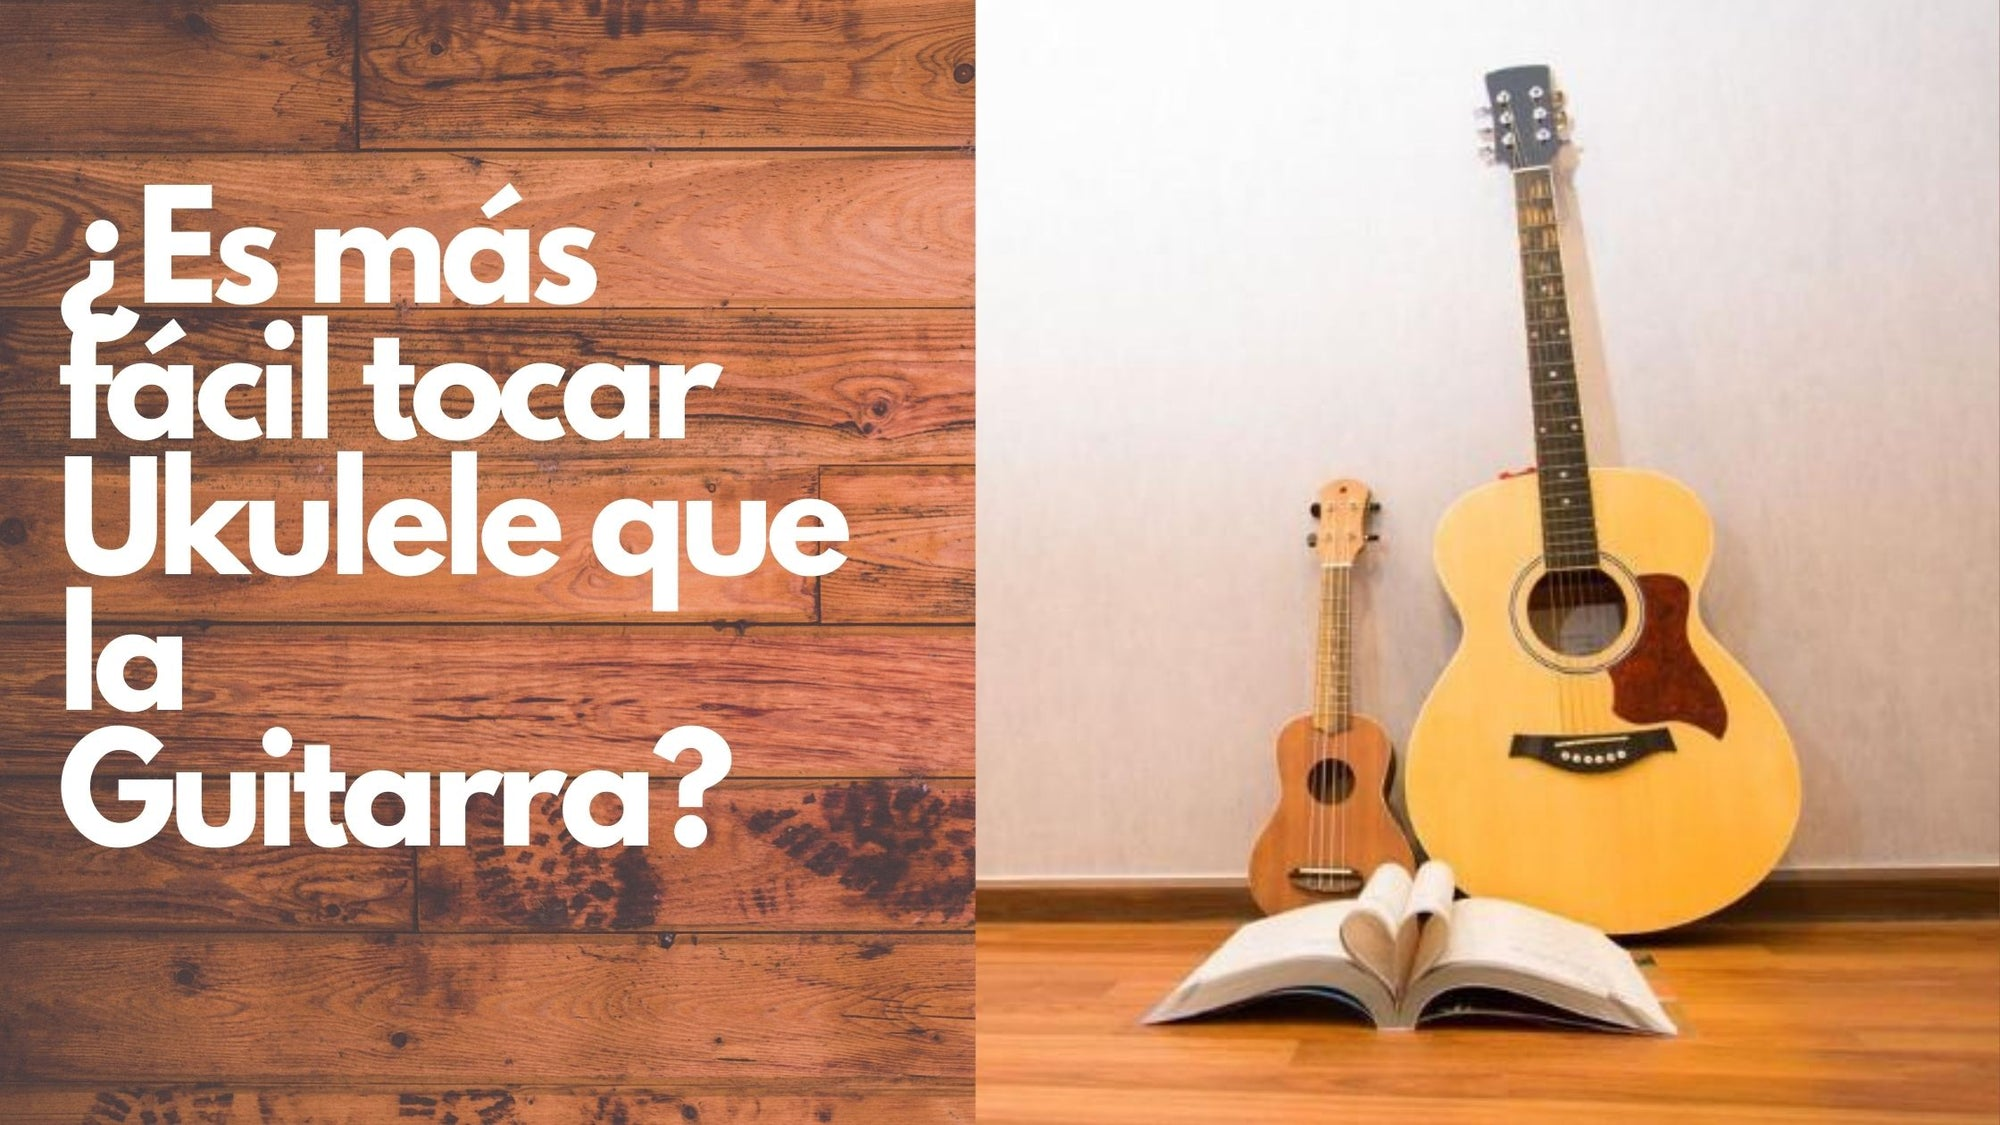 Is it easier to play the ukulele than the guitar?